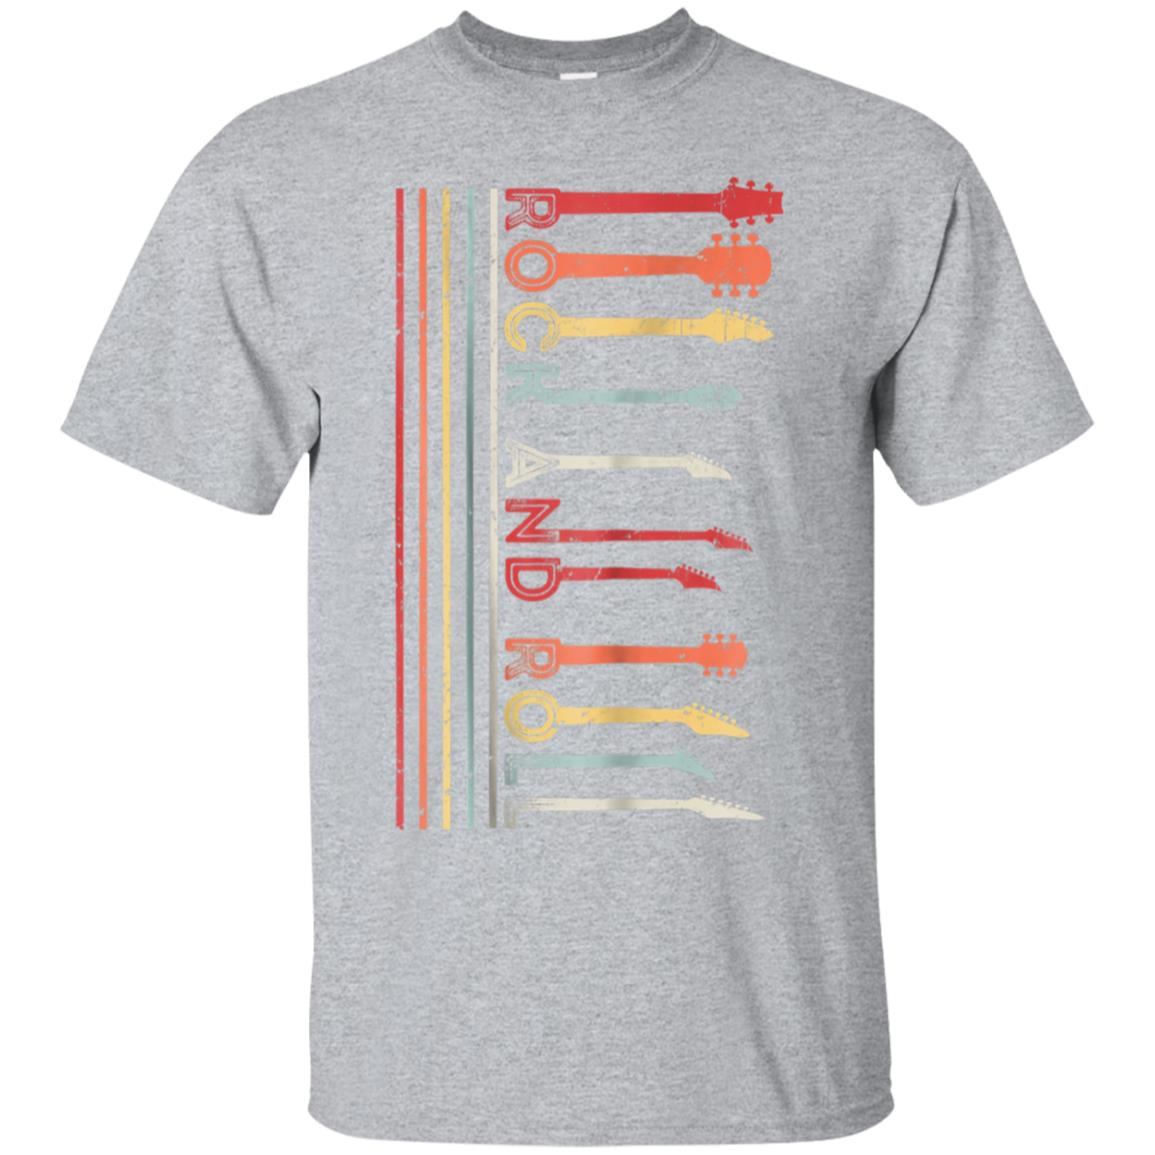 Classic Rock And Roll Vintage T-shirt, Concert Band Cool Tee 99promocode